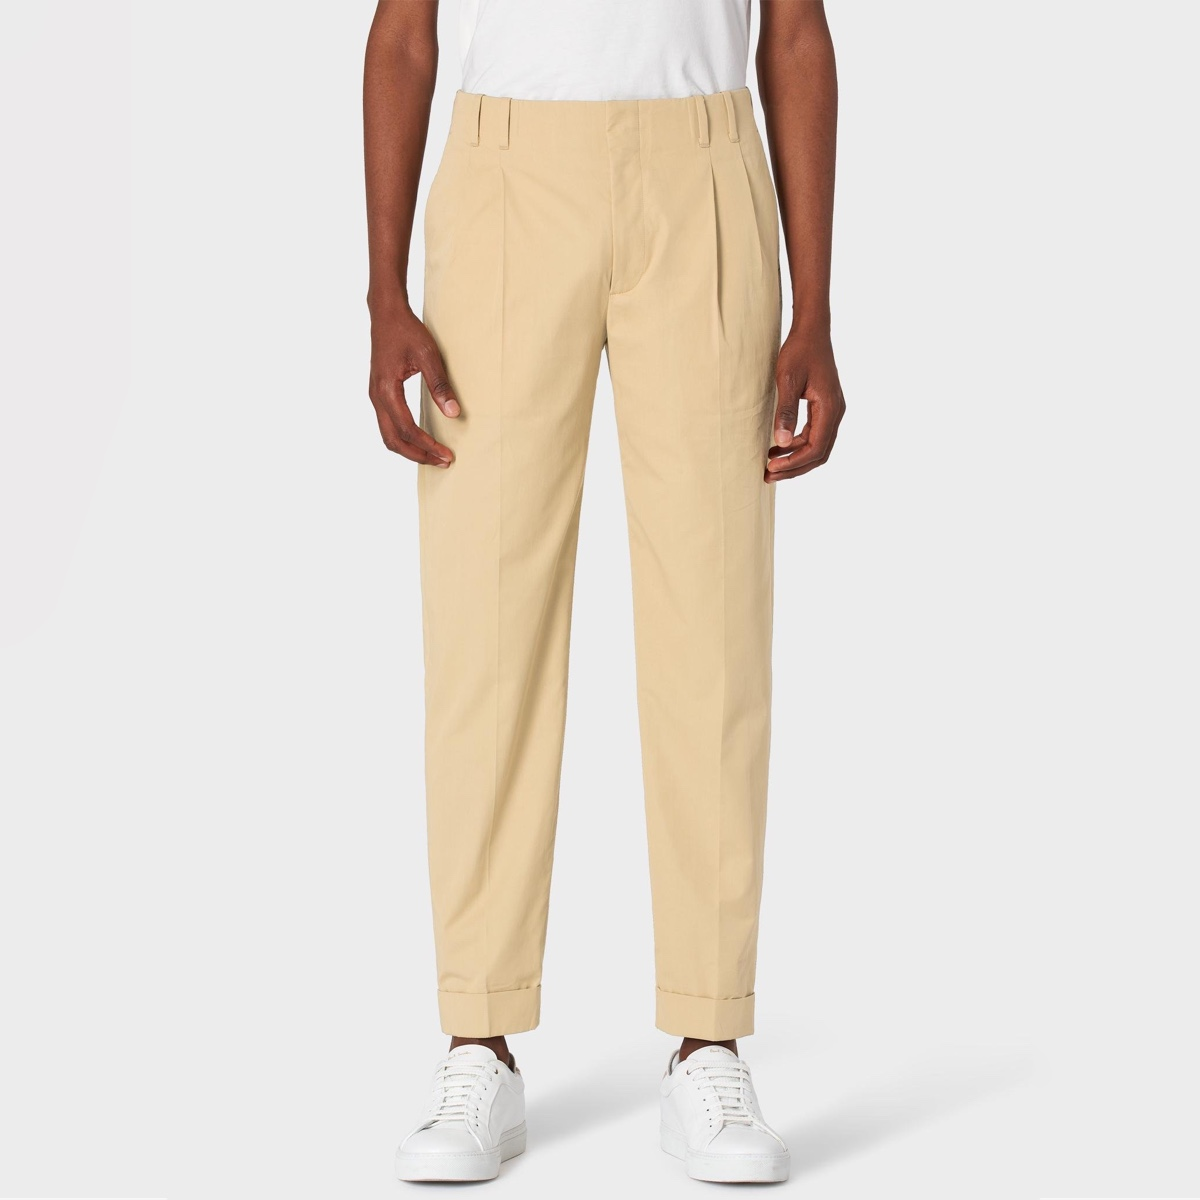 paul-smith-sand-Tapered-fit-Sand-Double-pleated-Cotton-Pants (1).jpg